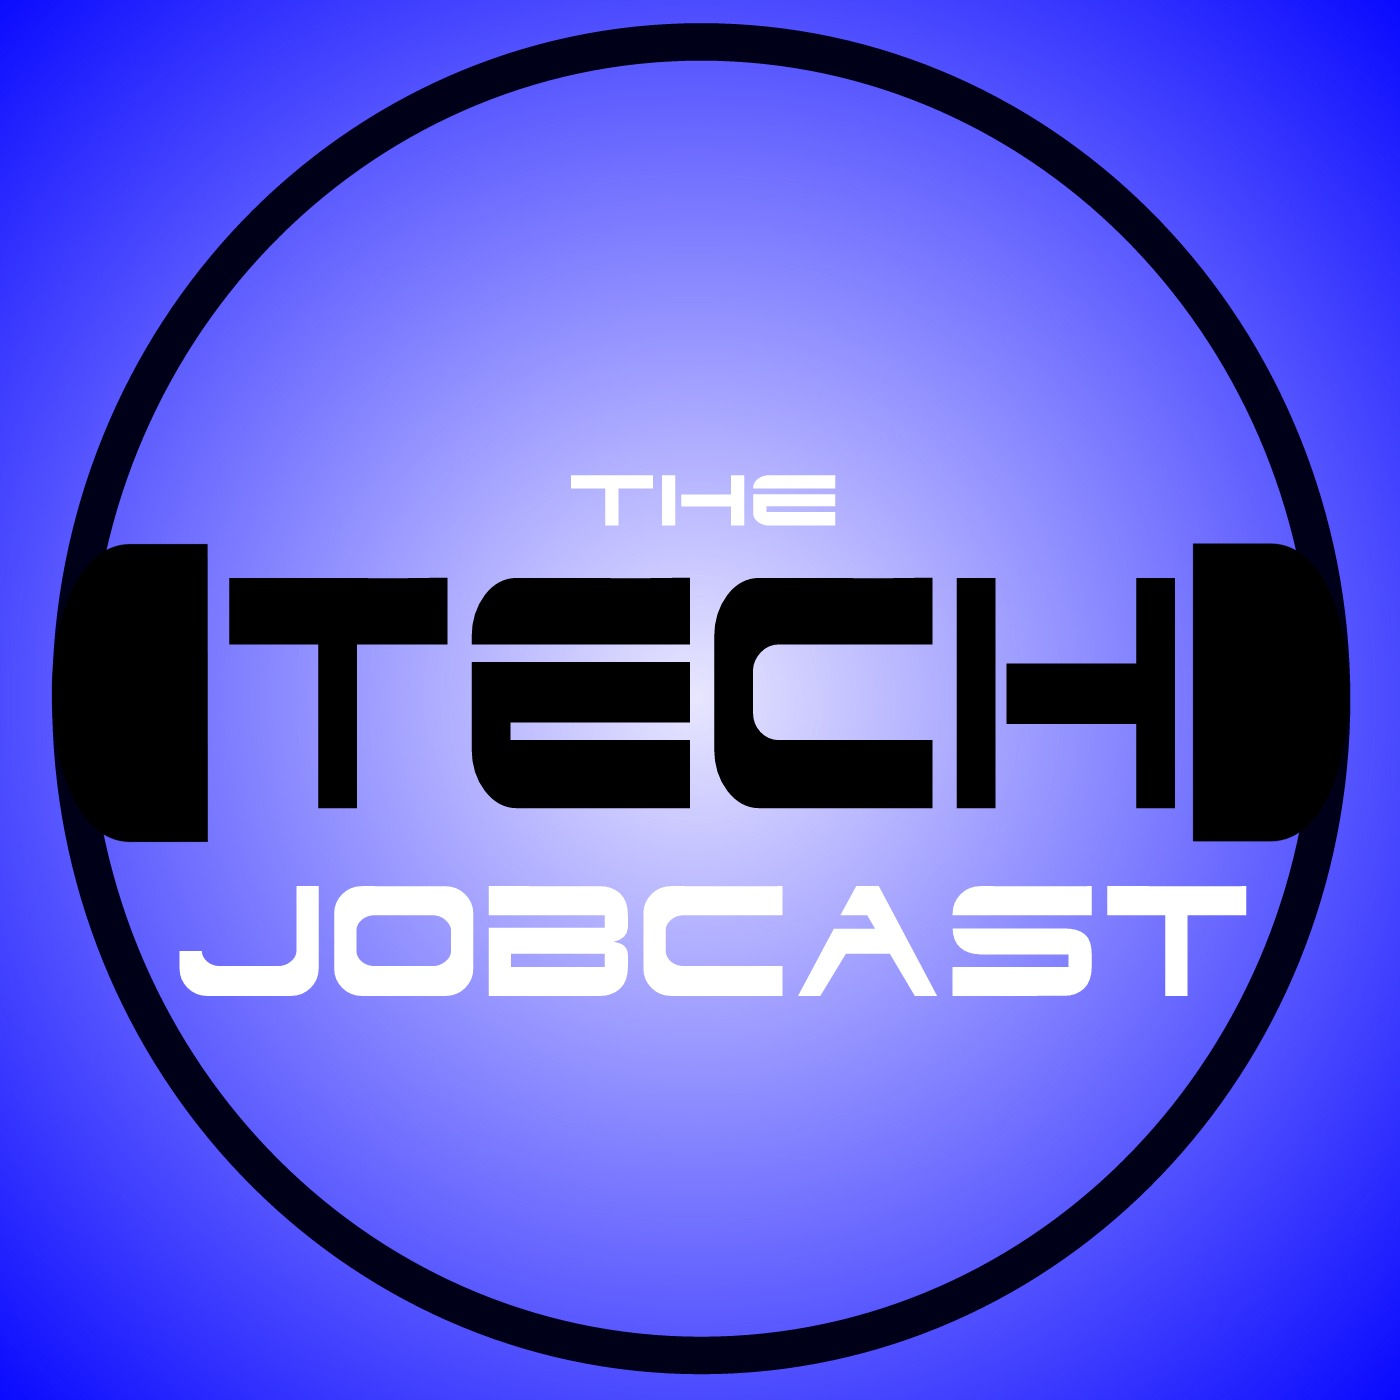 IT Job listings for the week of February 11, 2018